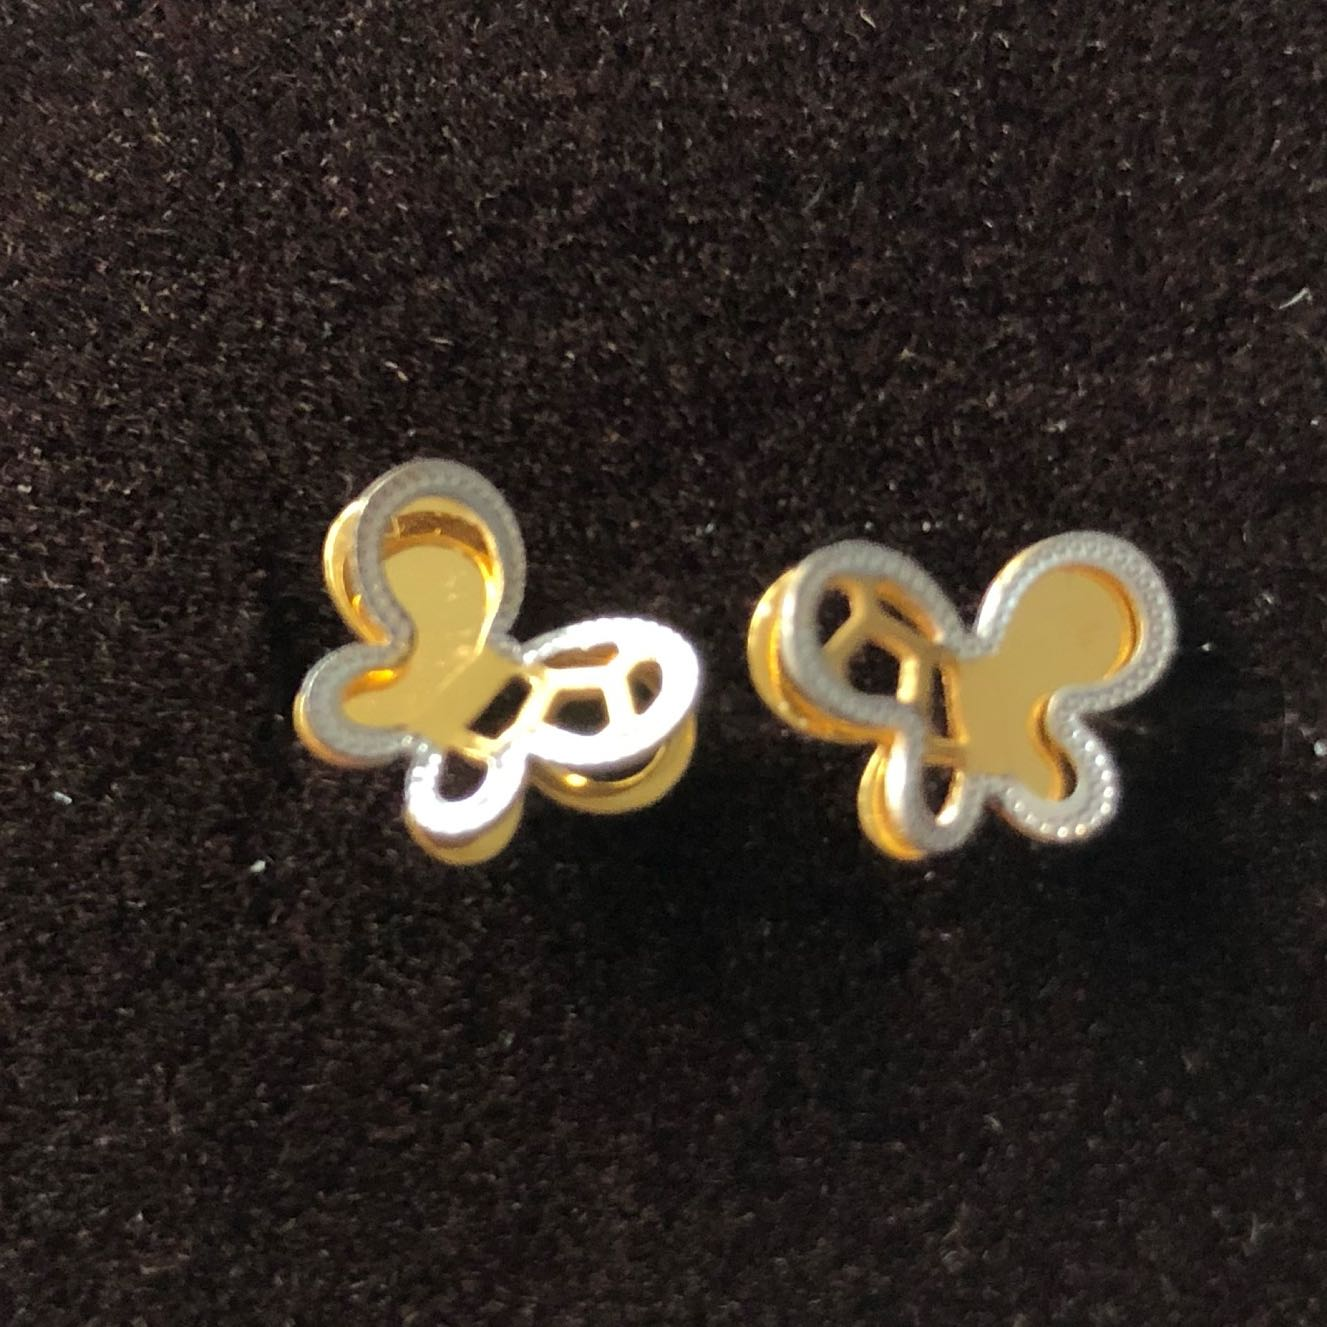 Italy Design Jewelry 916 Italy Design Butterfly Design 2 Tone Earrings